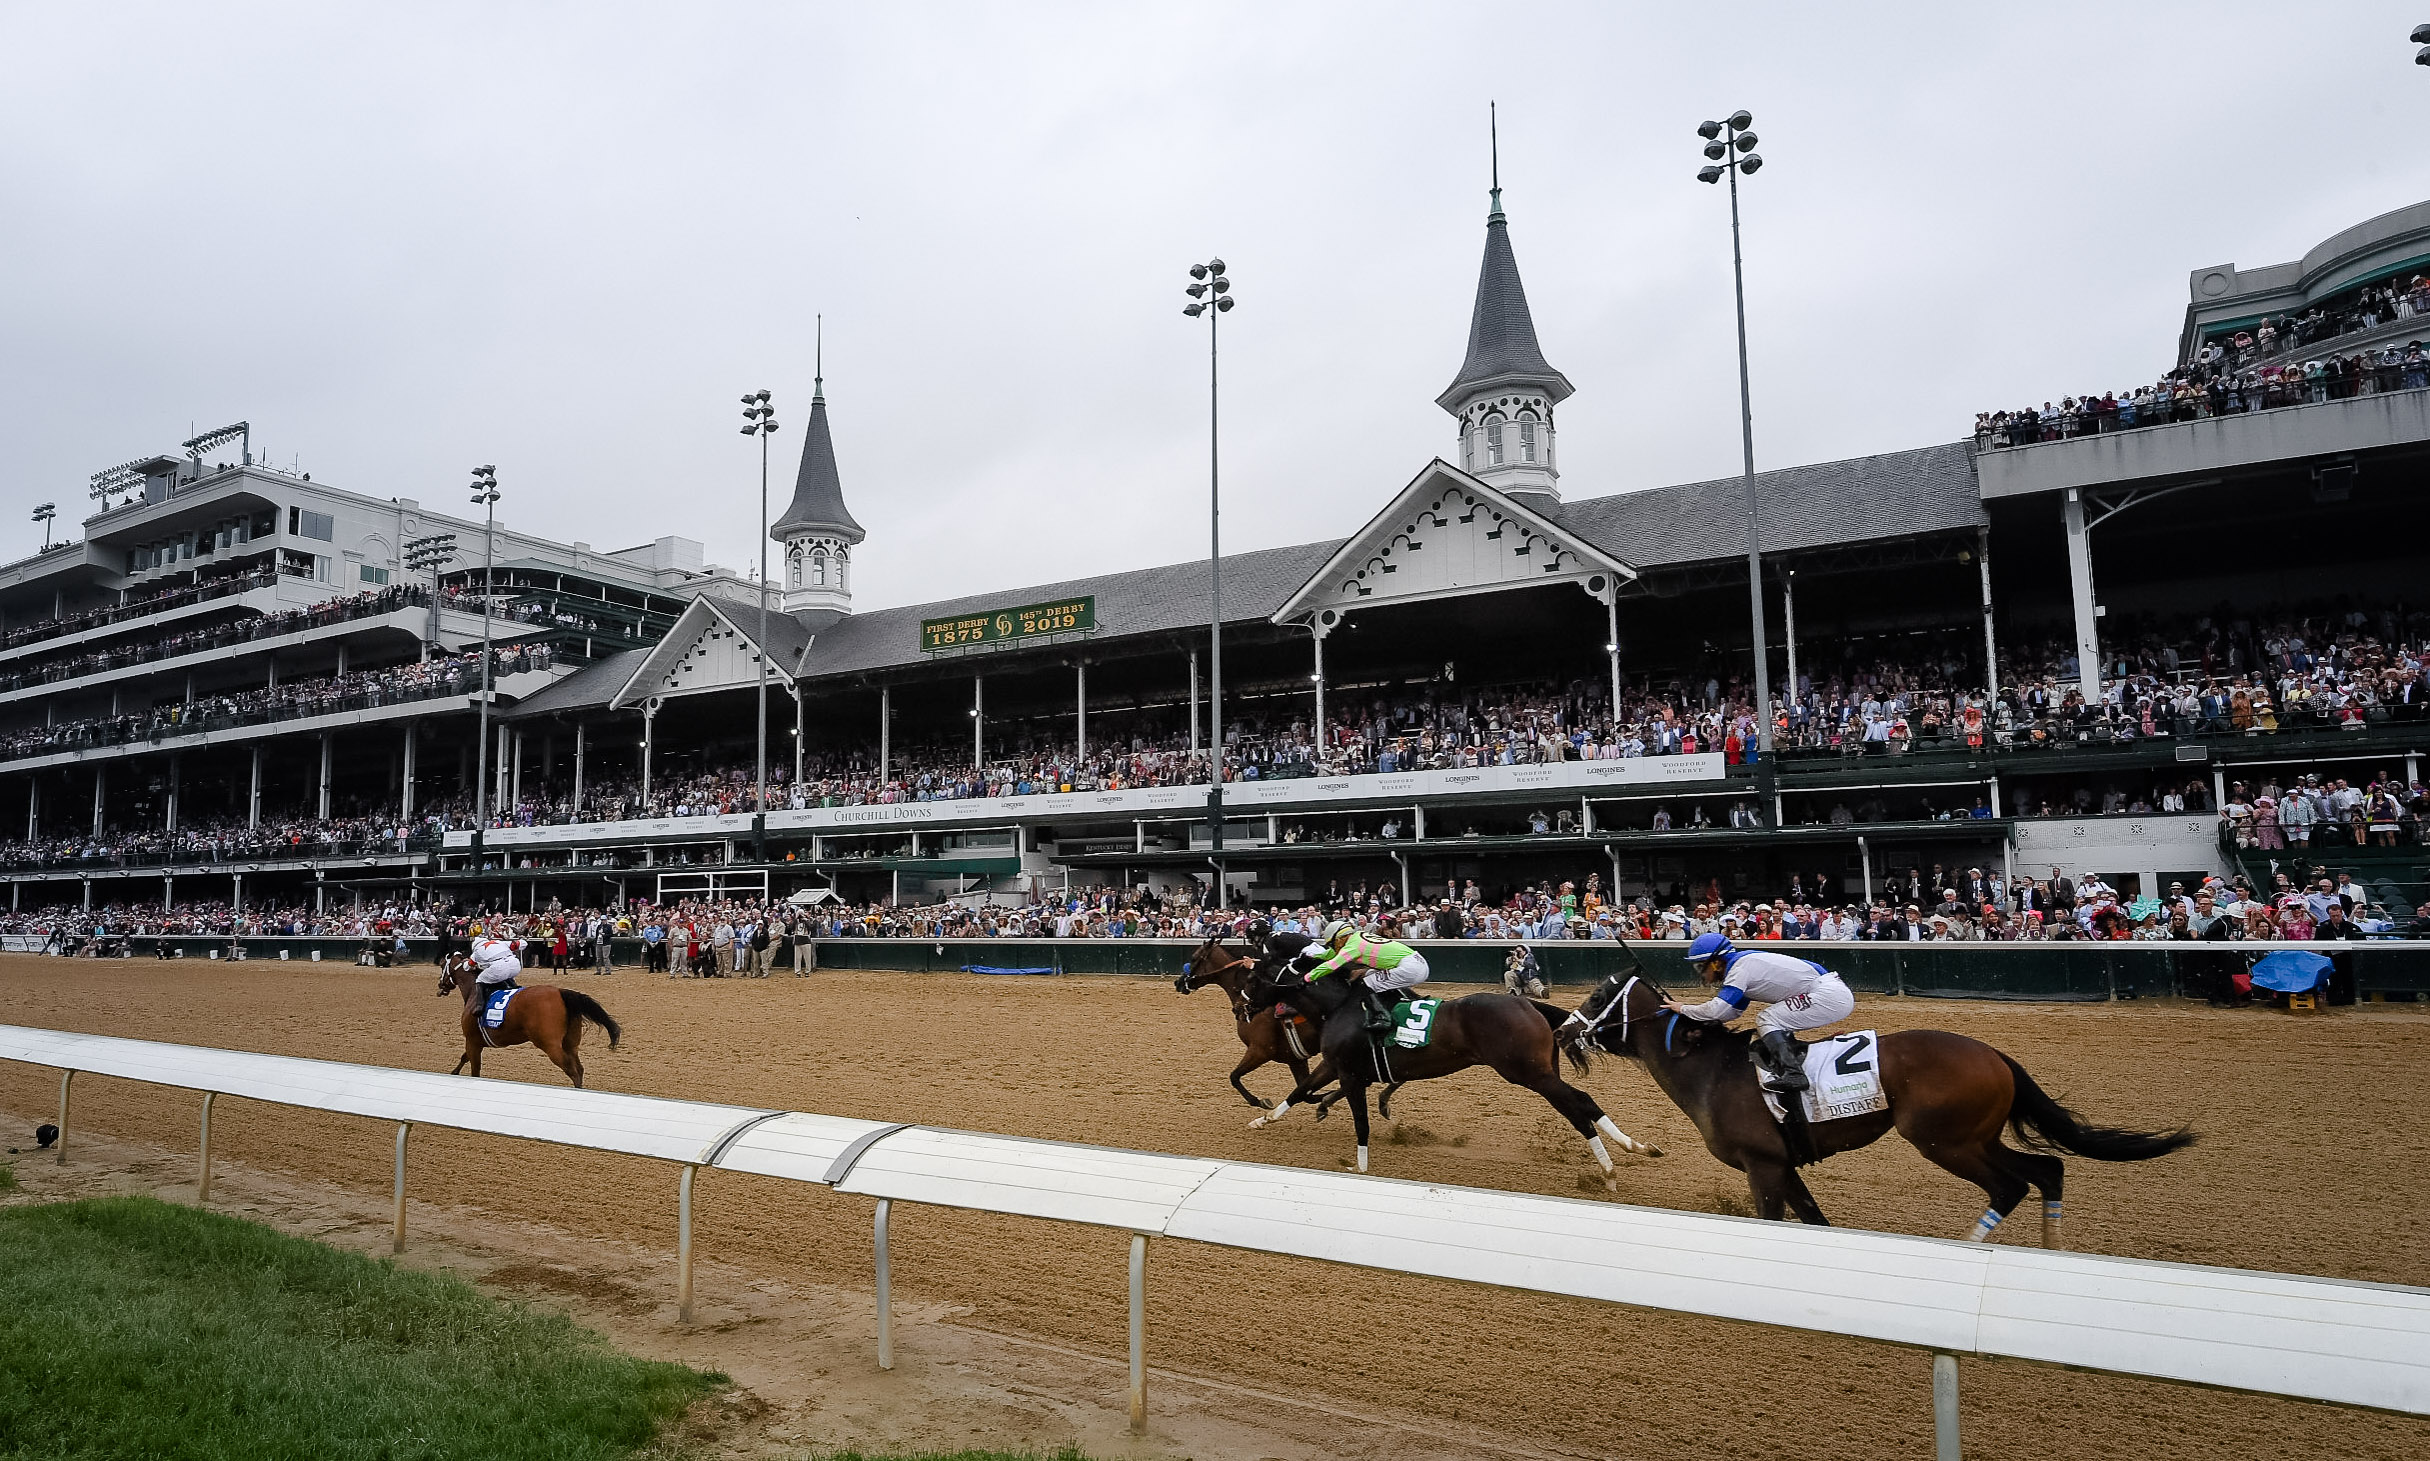 Kentucky Derby 2019_0504-14